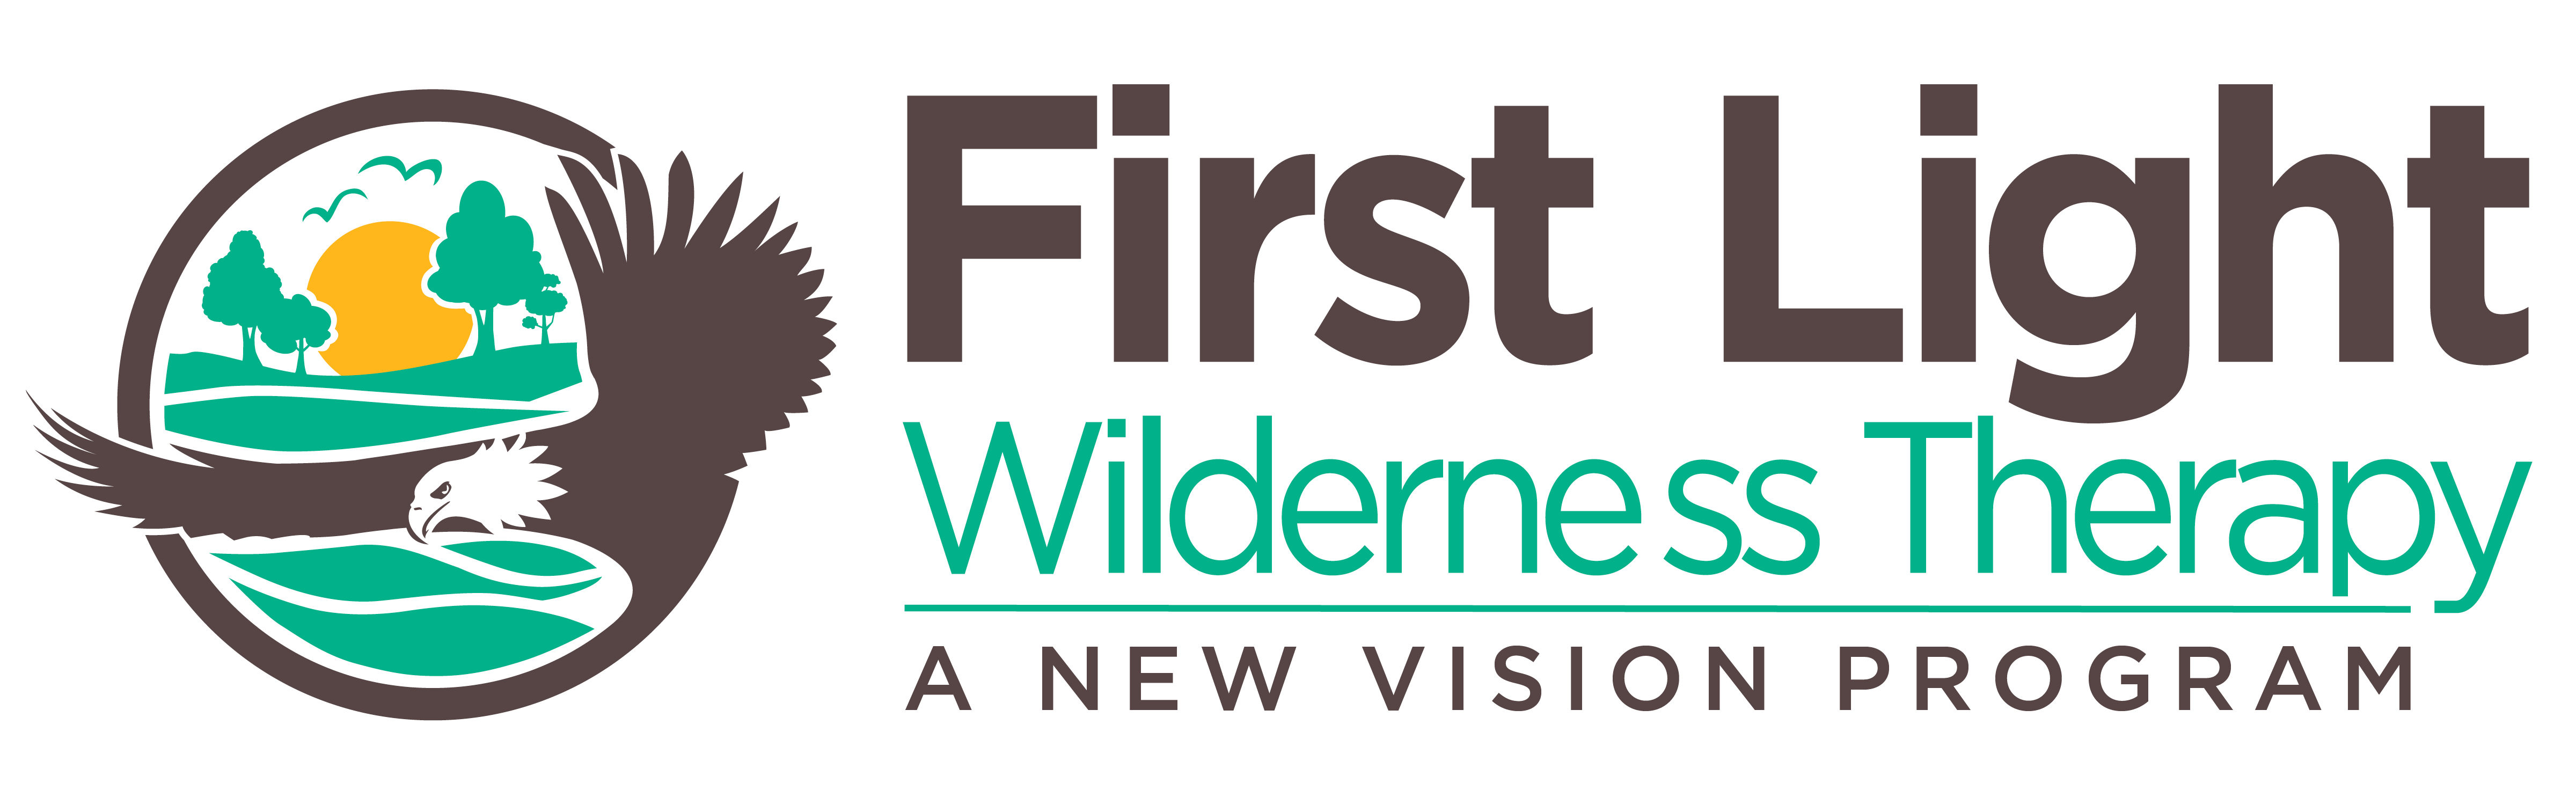 First Light Wilderness Therapy logo